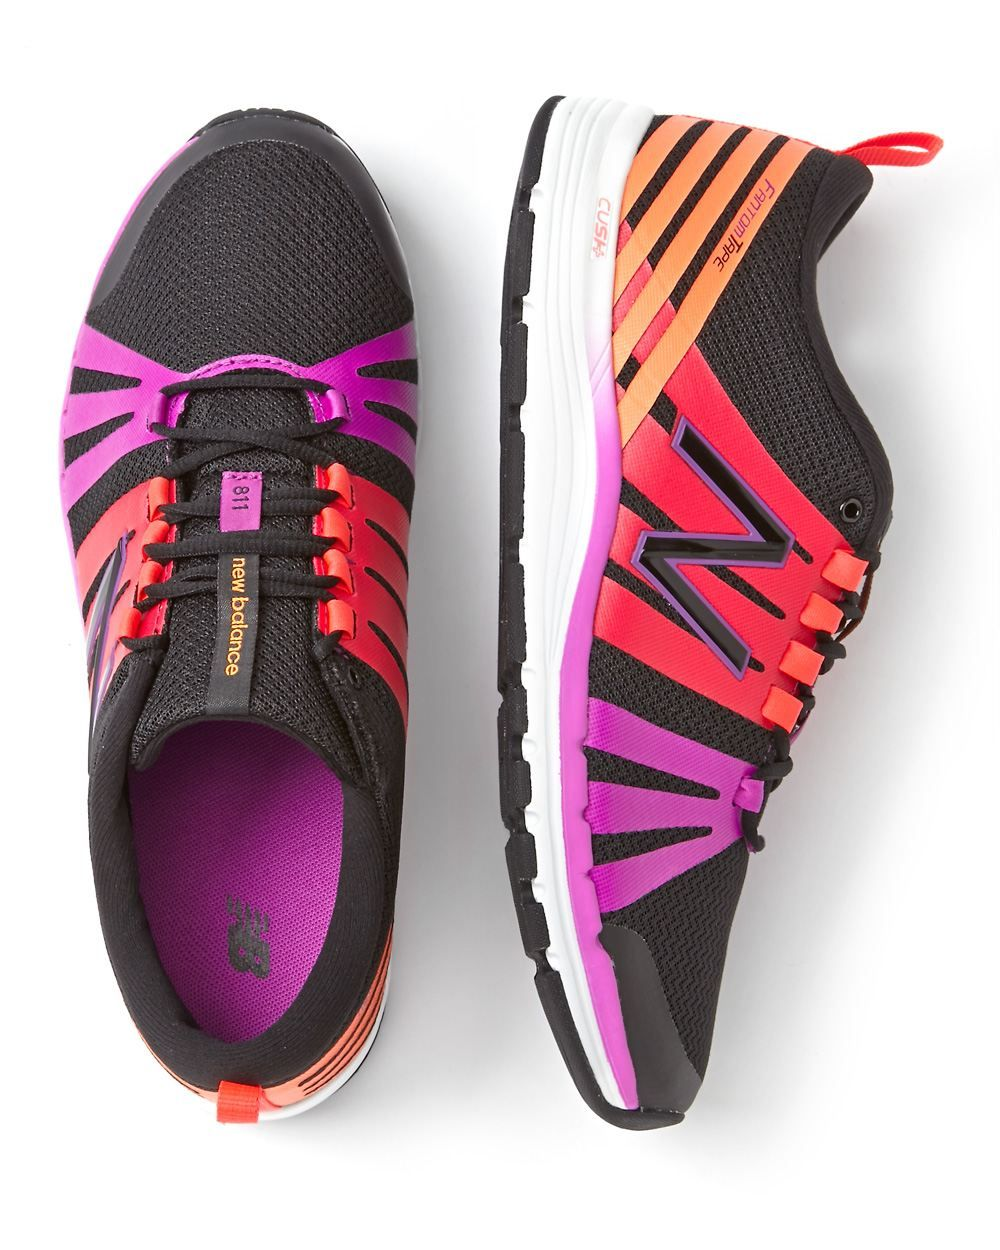 New Balance Walking Shoes Dsl